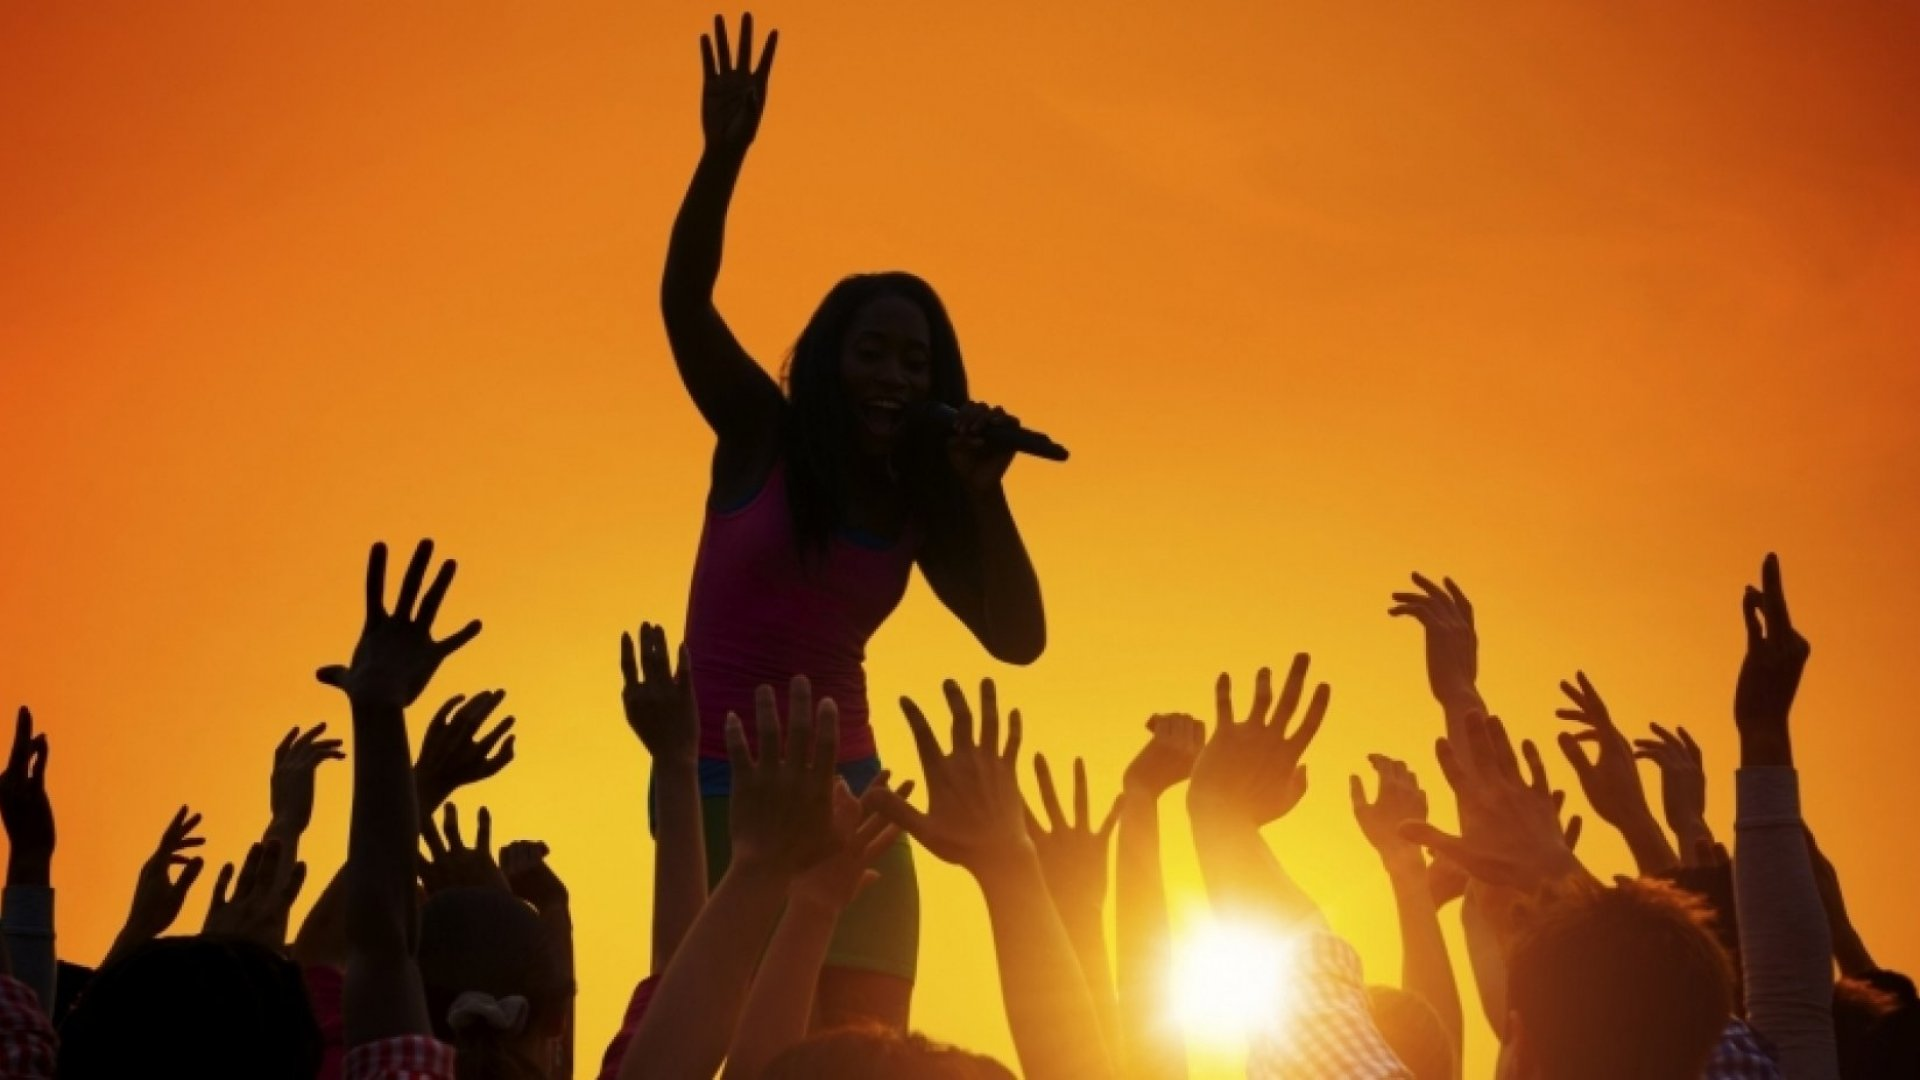 4 Key Success Lessons From Real Rock Stars